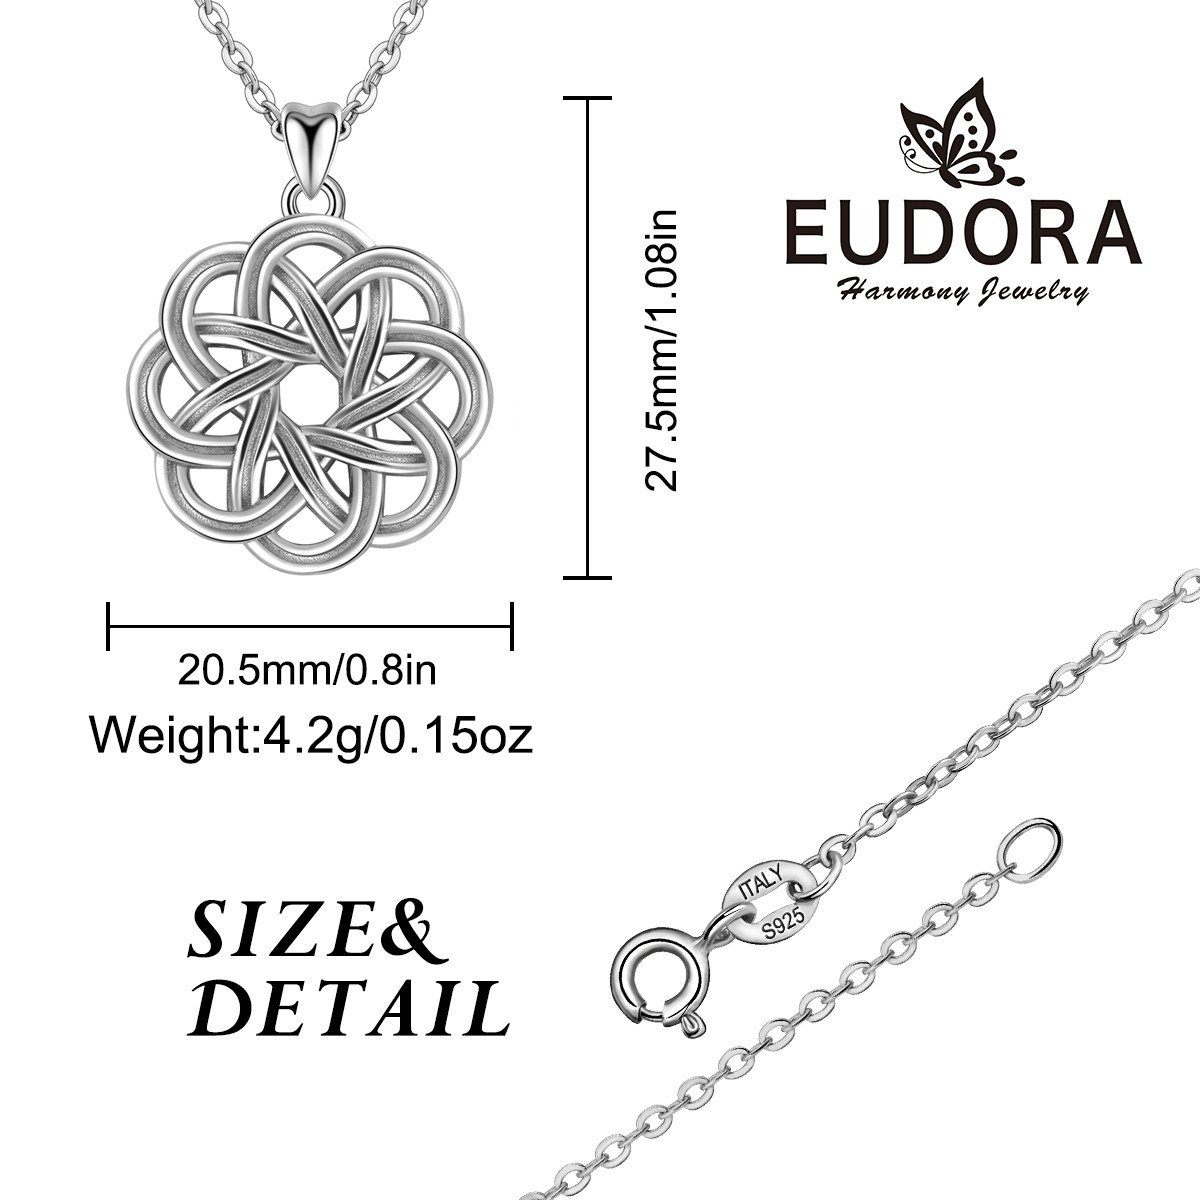 EUDORA Retro 925 Sterling Silver Irish Lucky Celtic Knot Pendant Necklace for Women, 18 Chain 18 Chain CYD176-CYB001-NL41-18